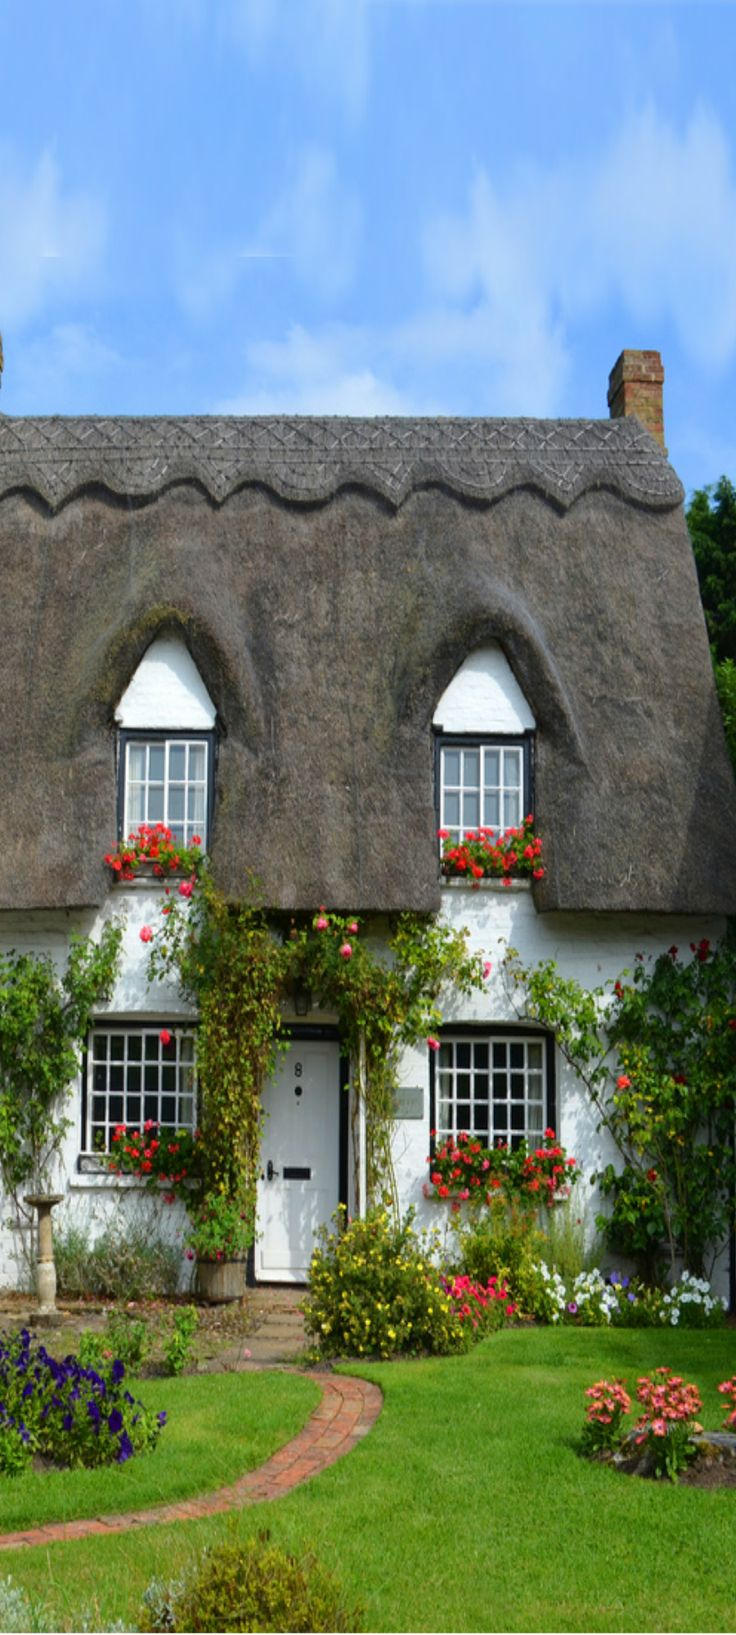 Delightful Scottish Country Cottages 5 Ahh But To Live In A Cottage With